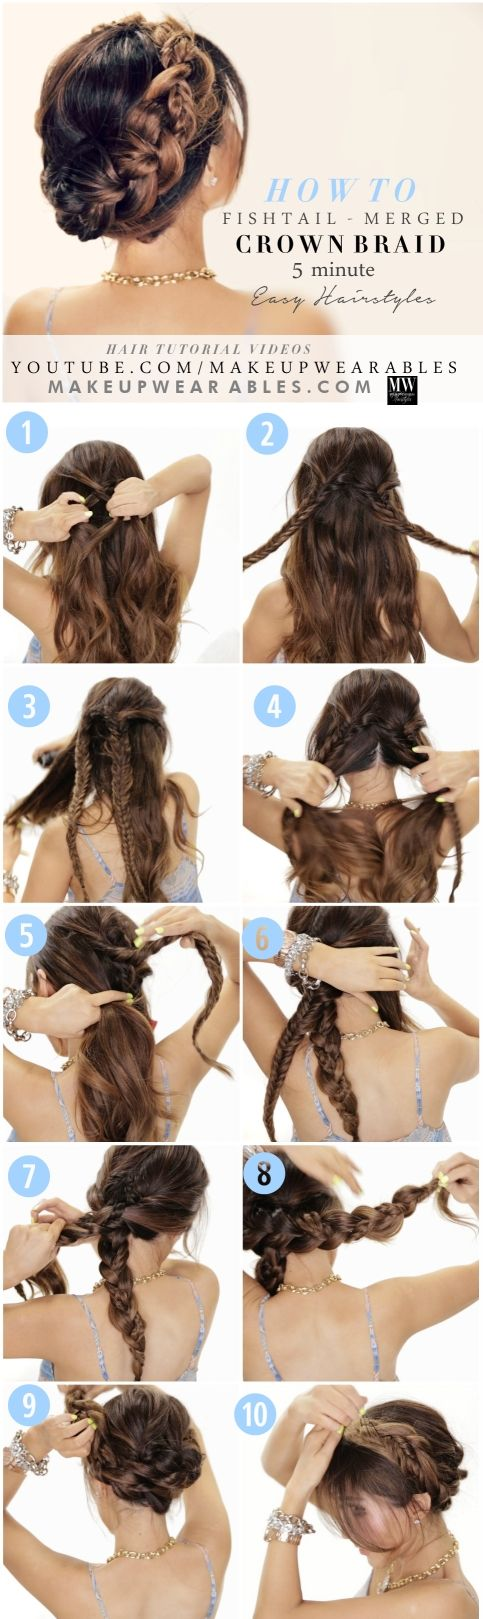 Easy Everyday Crown Braid | Prom Wedding Hairstyles